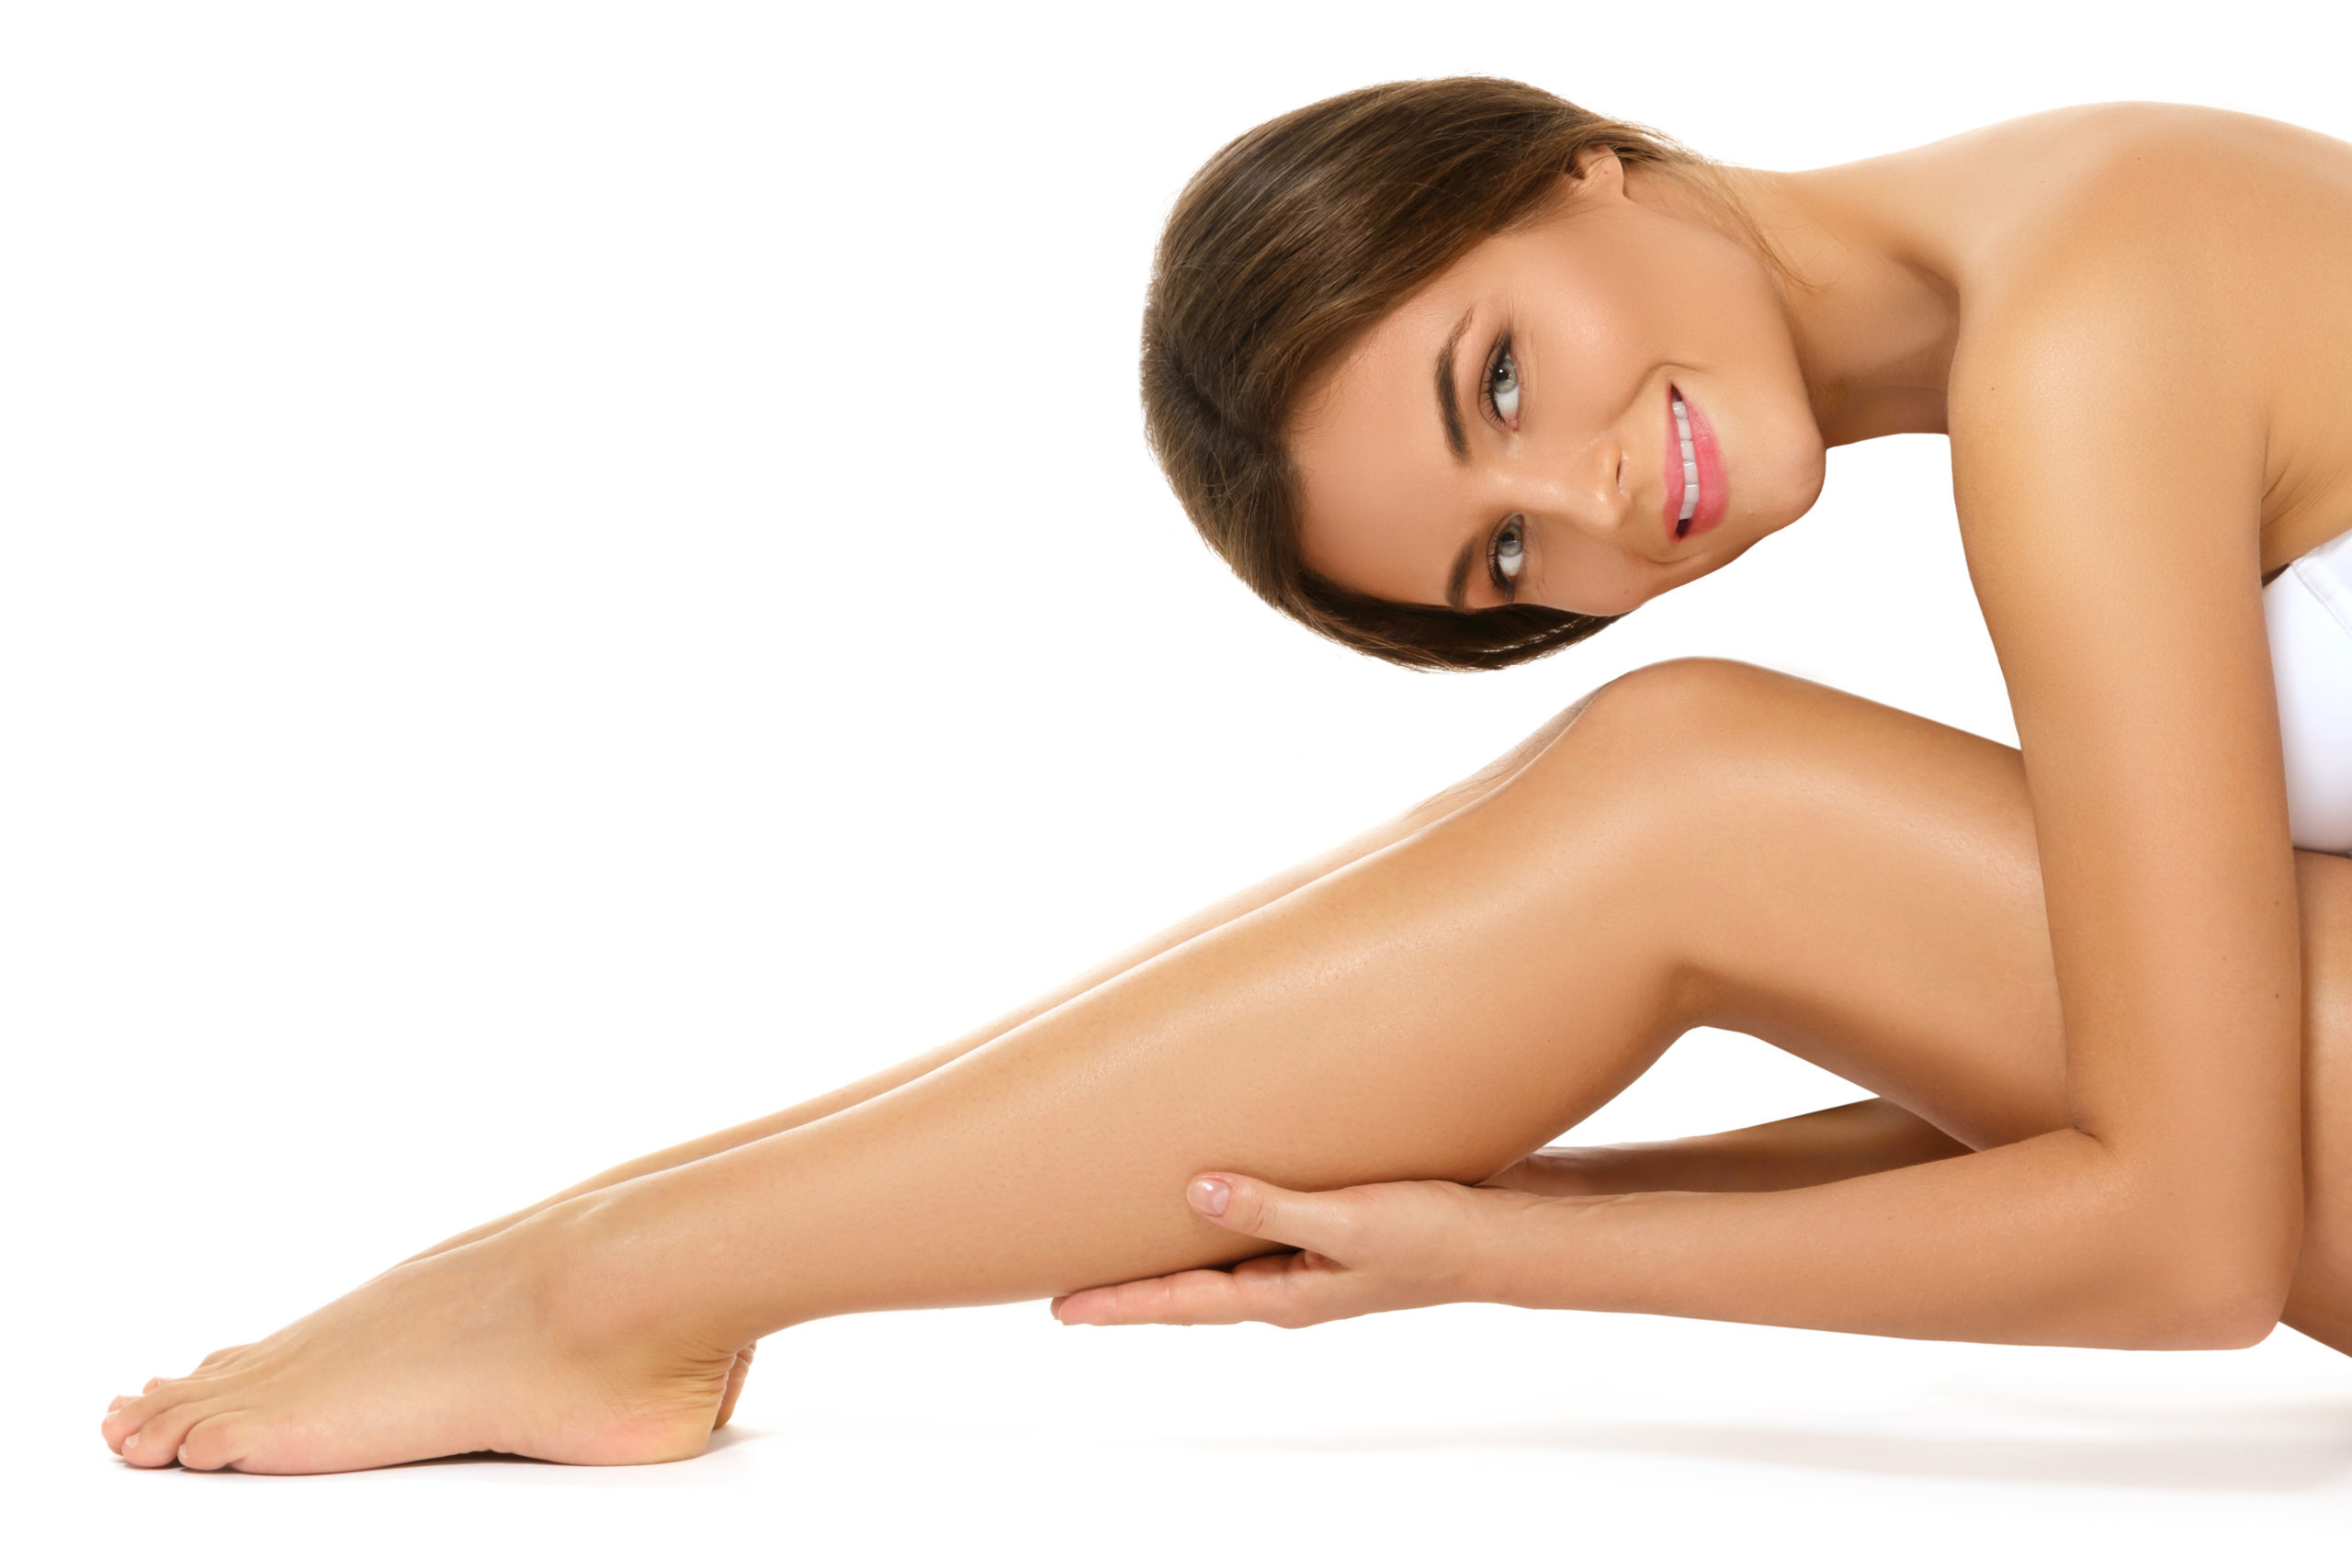 Water retention, Puffiness, Bloated, Swelling, Slimming treatments